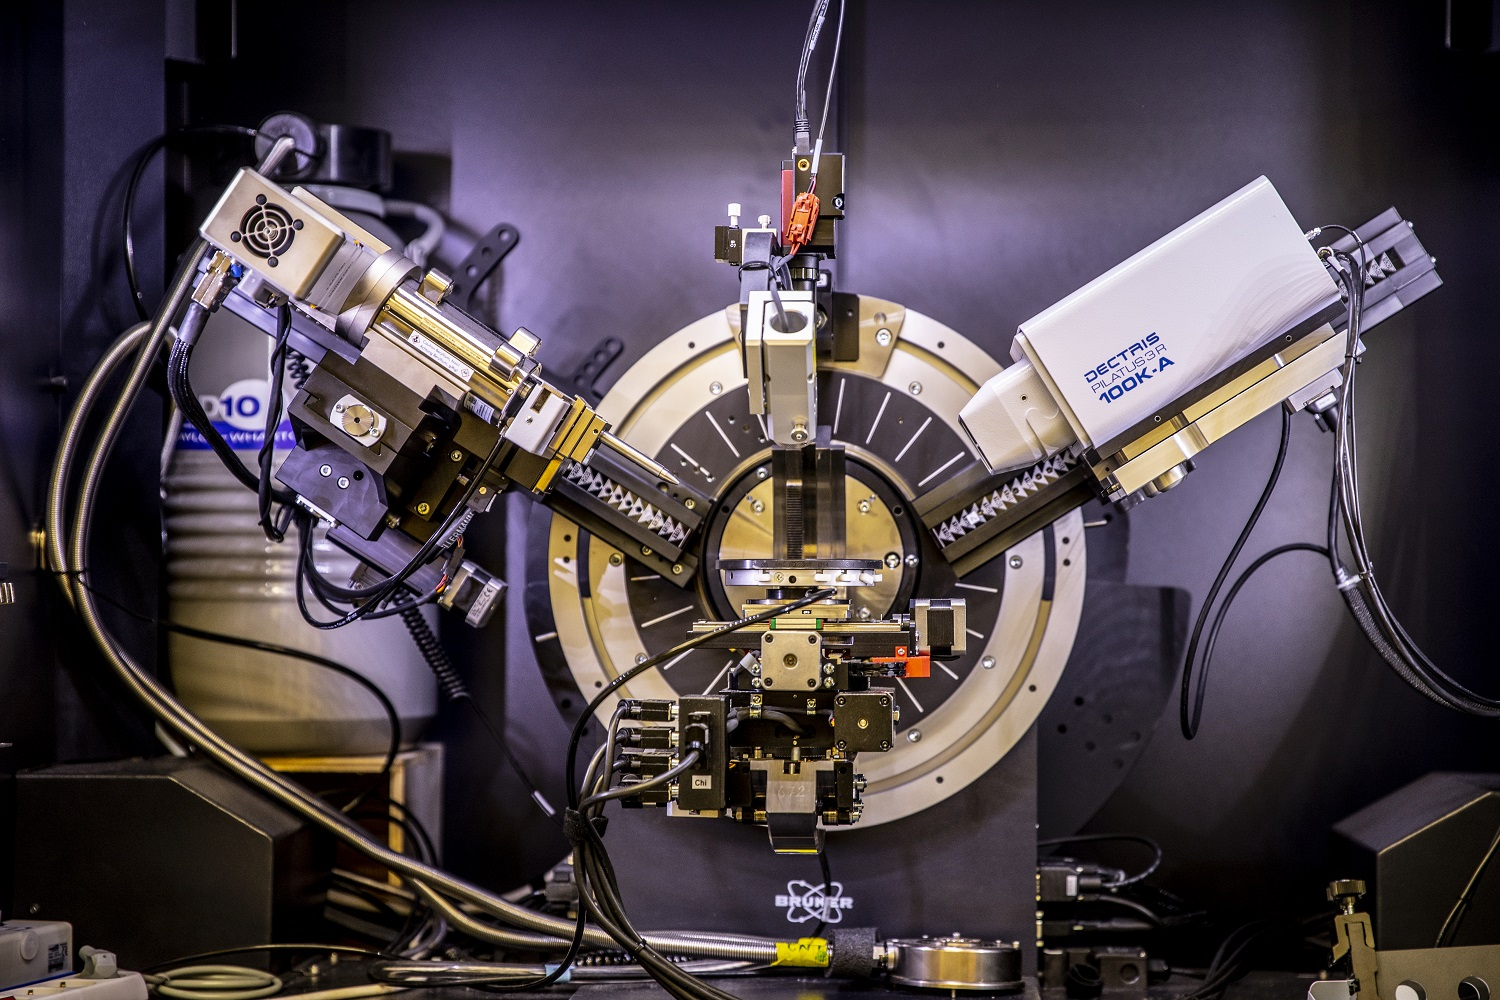 X-ray diffractometer at the UW Molecular Analysis Facility